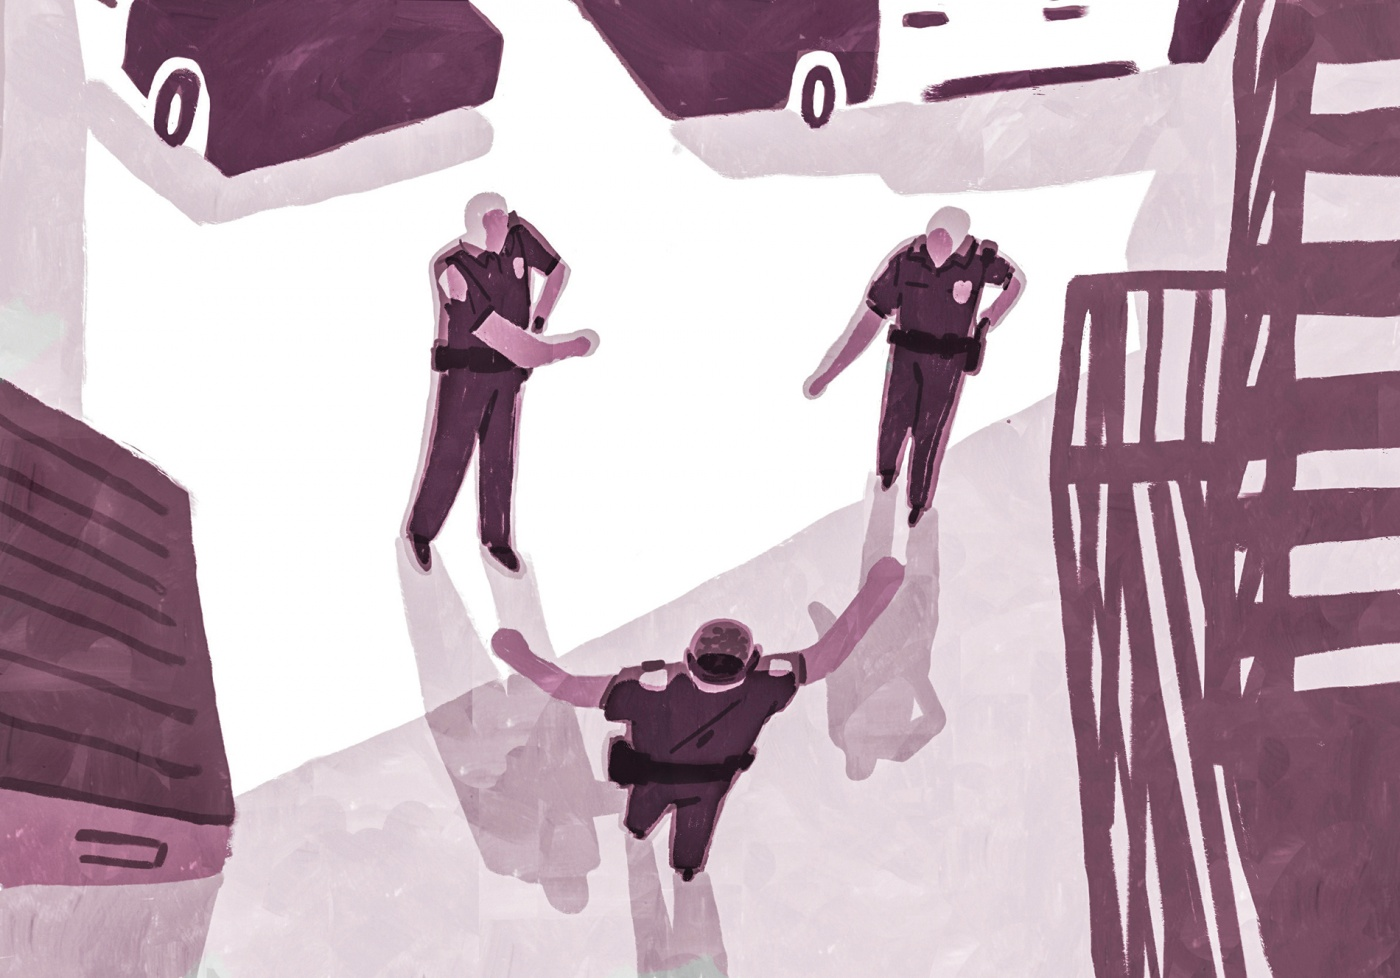 Racial justice: on the police force